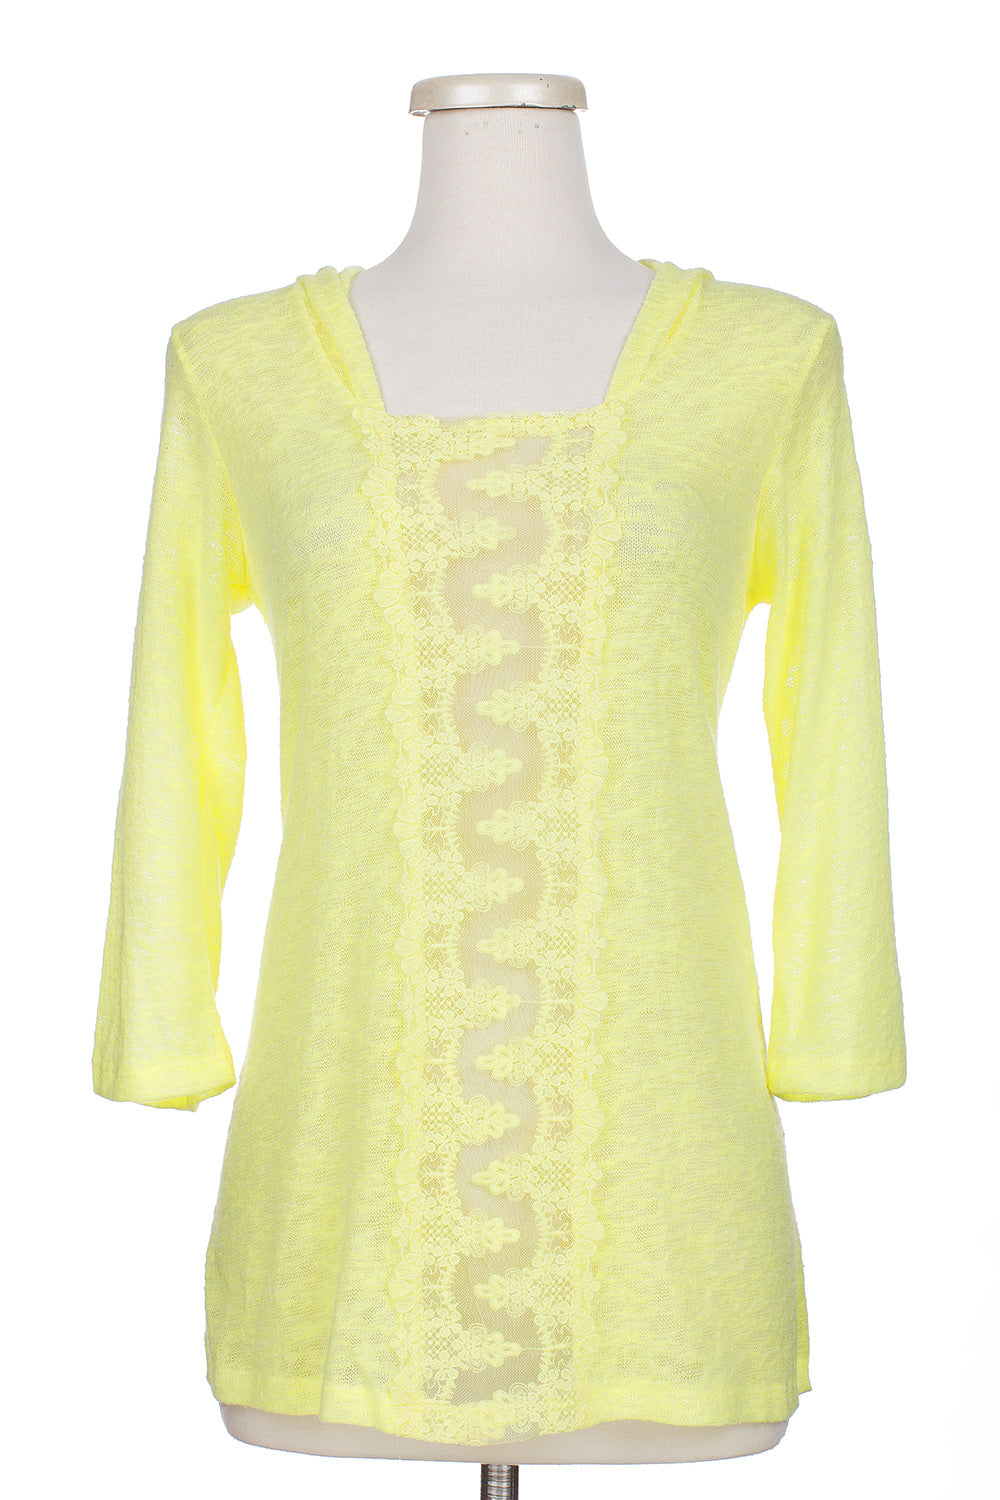 Type 1 Heartland Top in Yellow